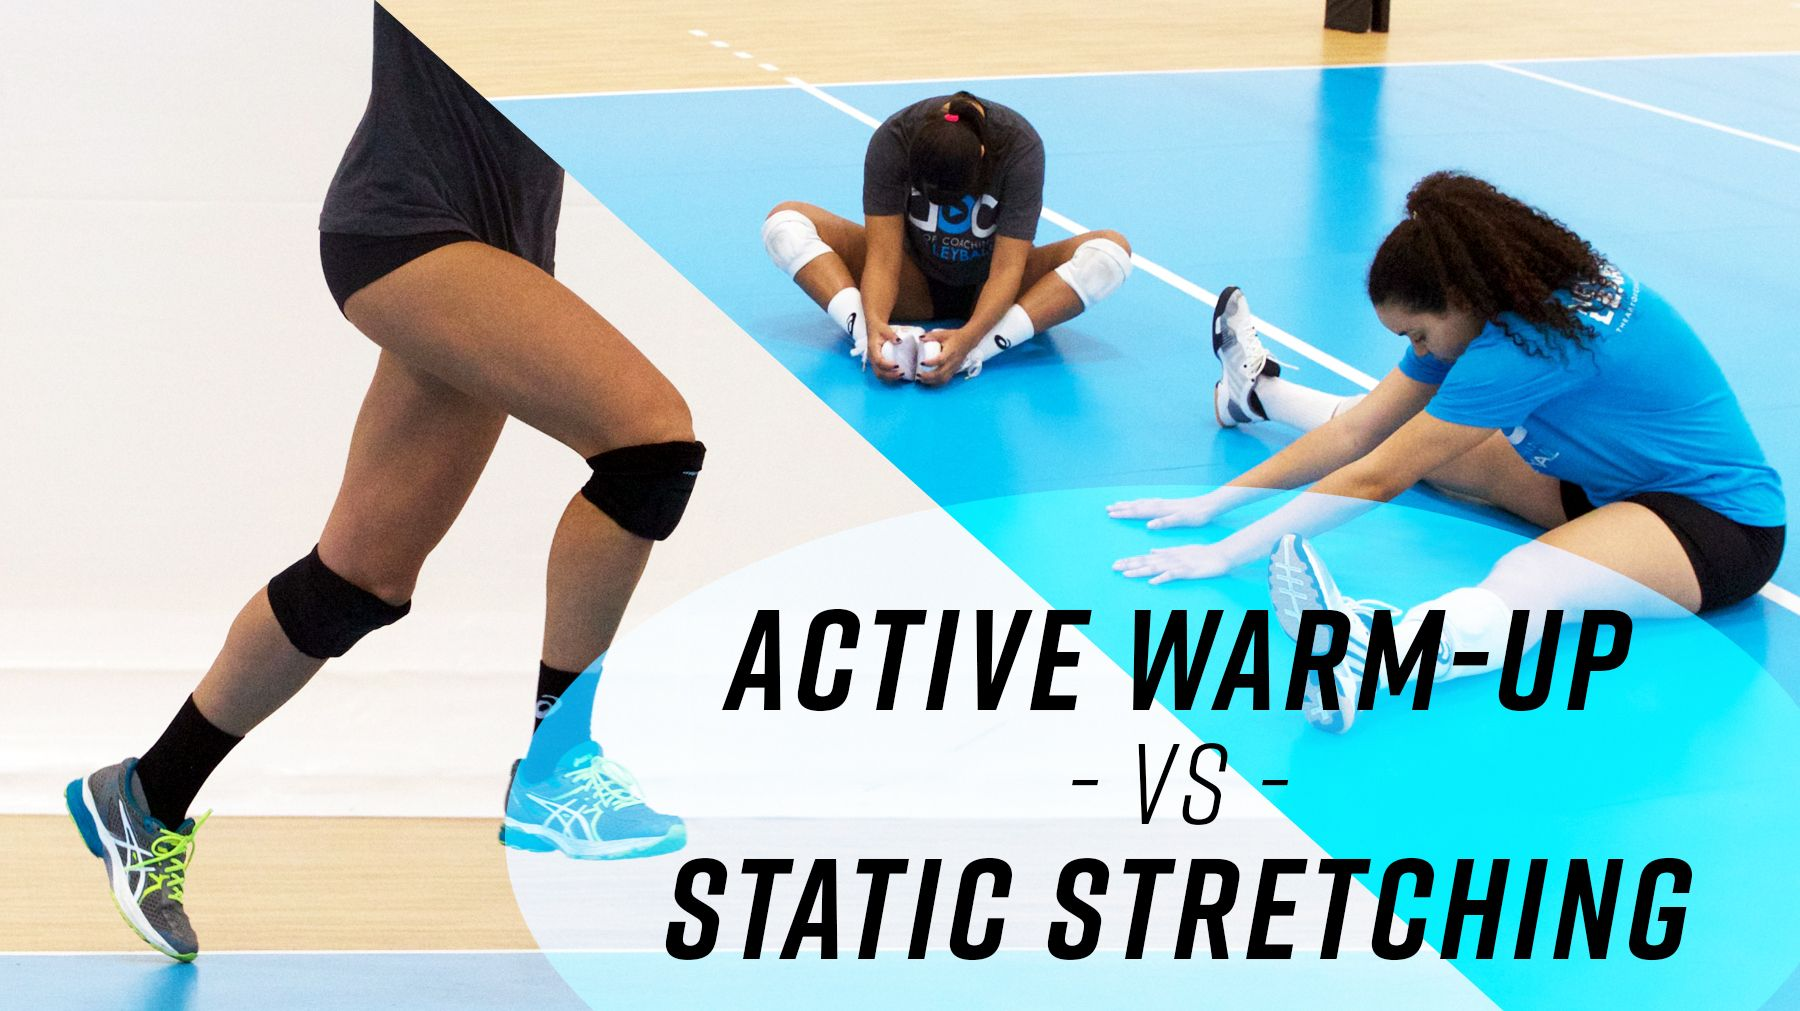 Active Warm Up Vs Static Stretching The Art Of Coaching Volleyball Coaching Volleyball Volleyball Warmup